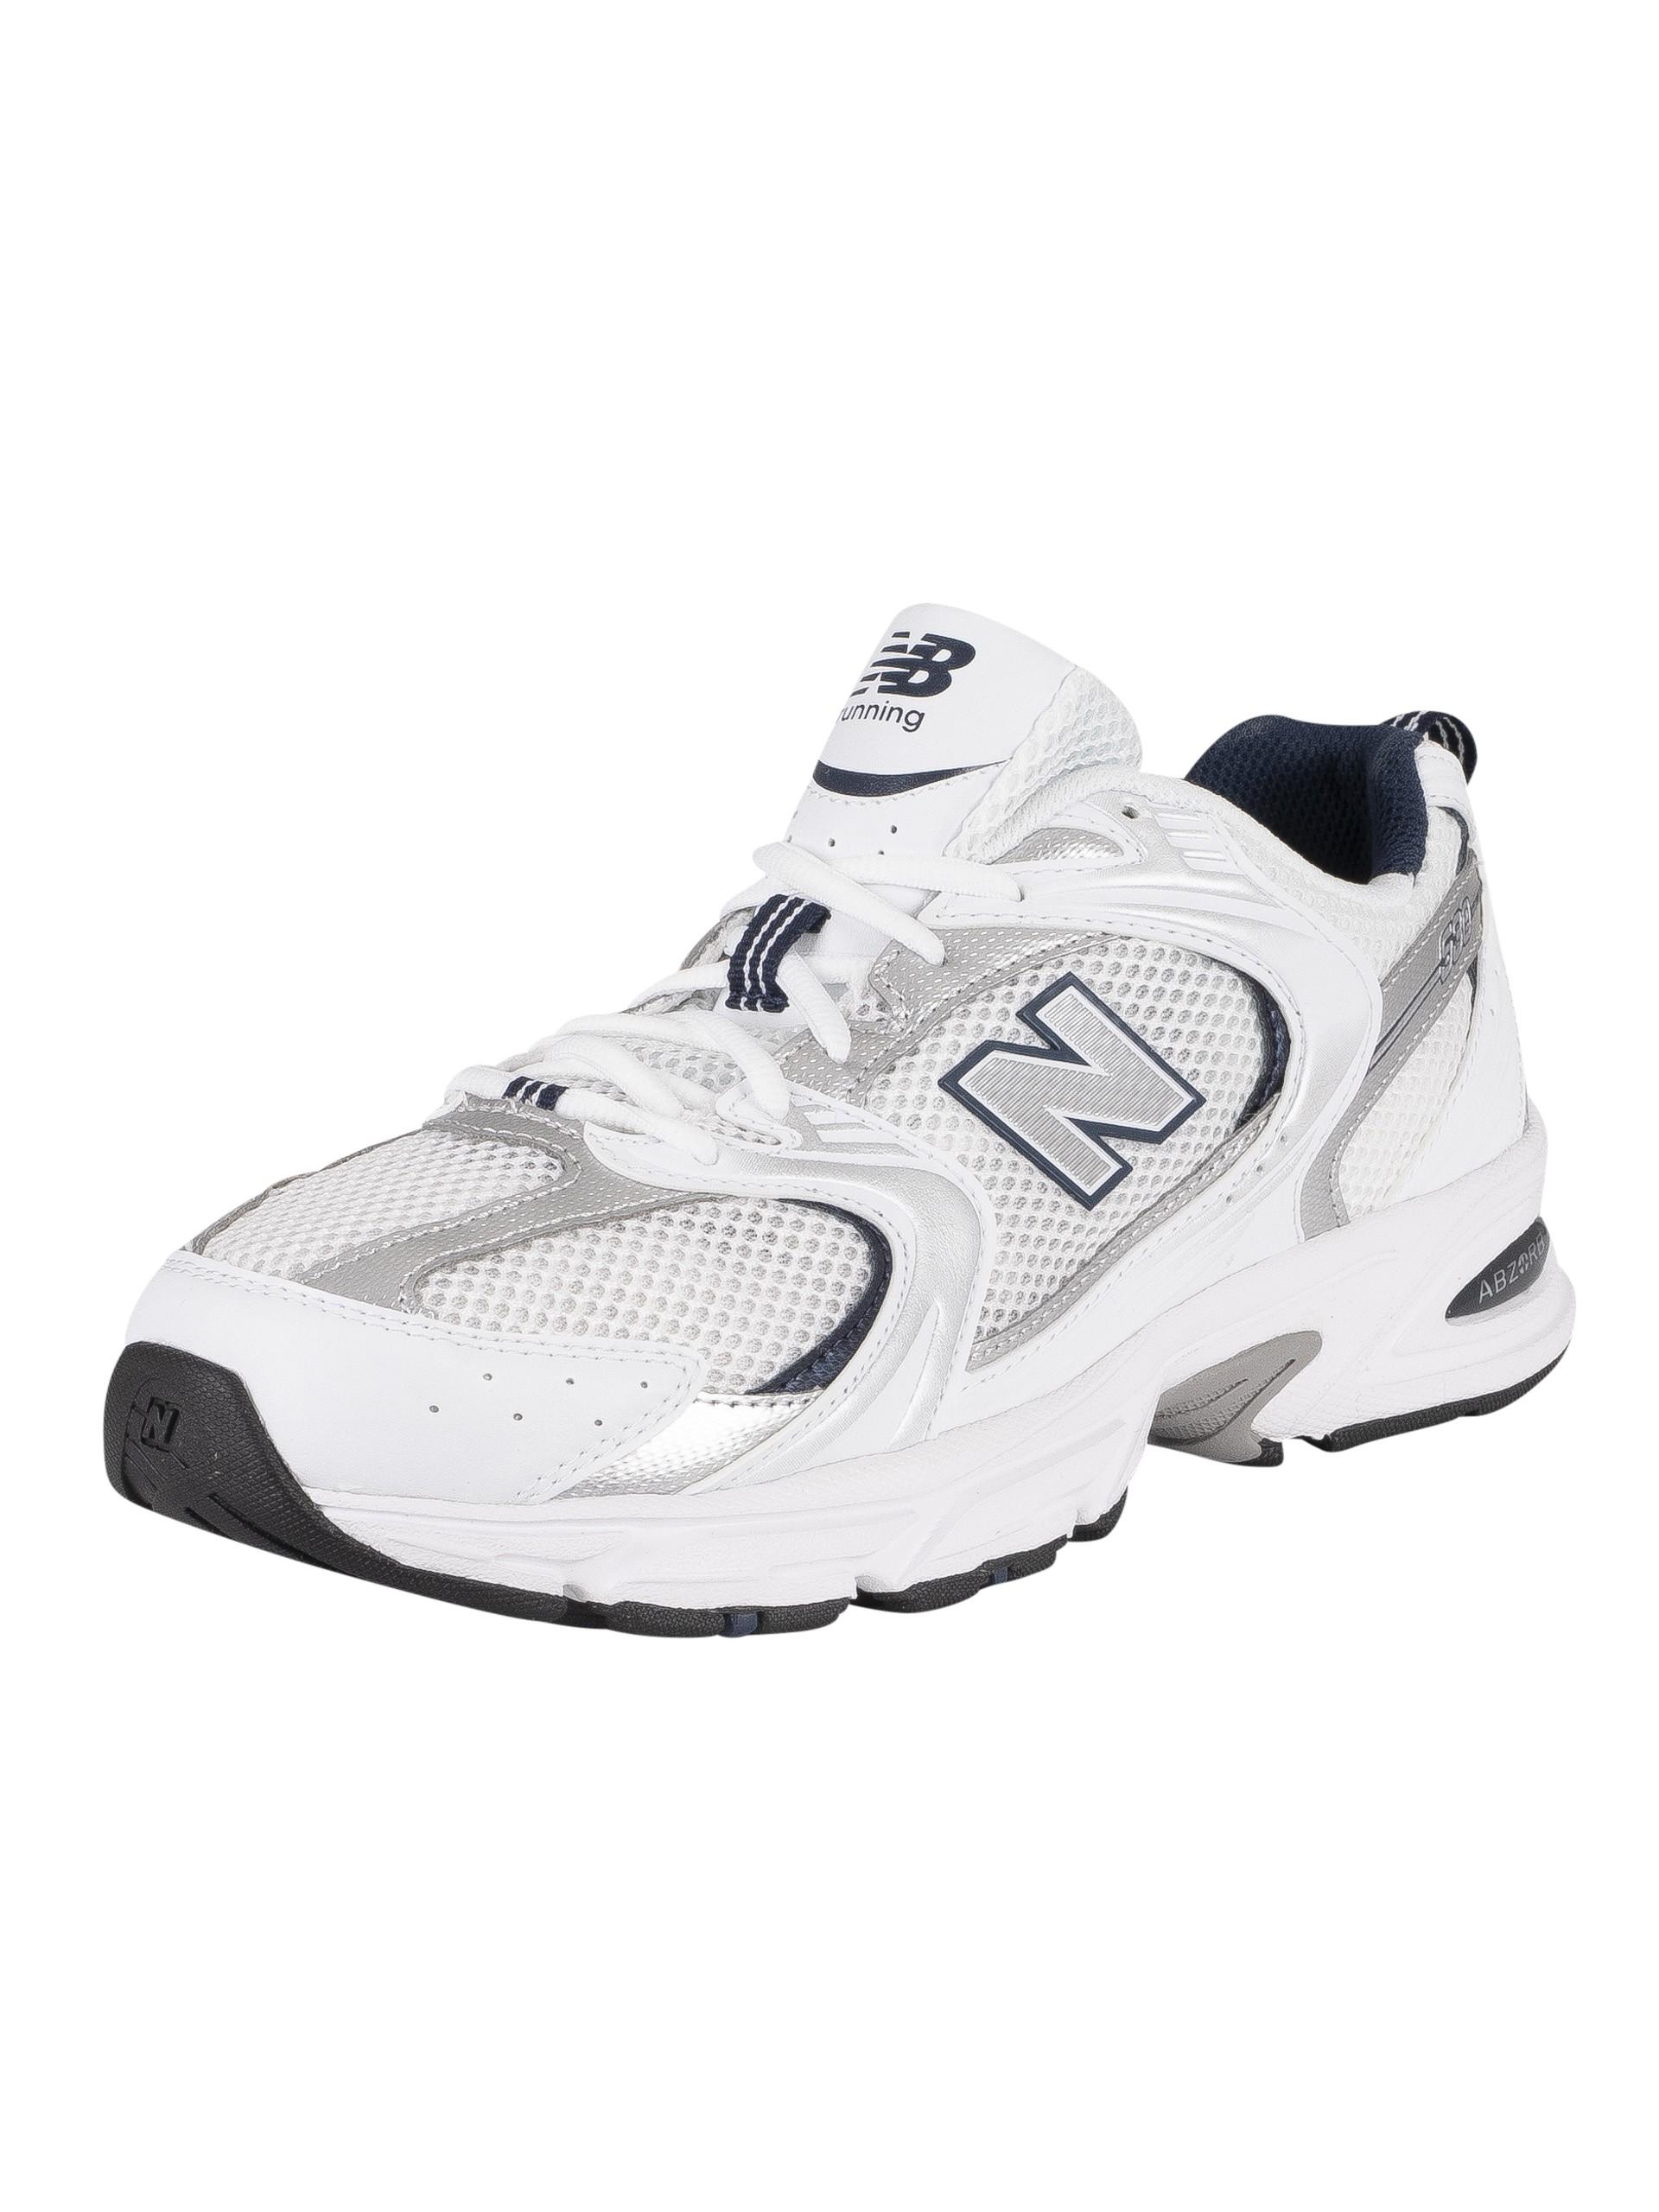 New Balance Suede 530 Trainers in White/Natural Indigo (White) for ...